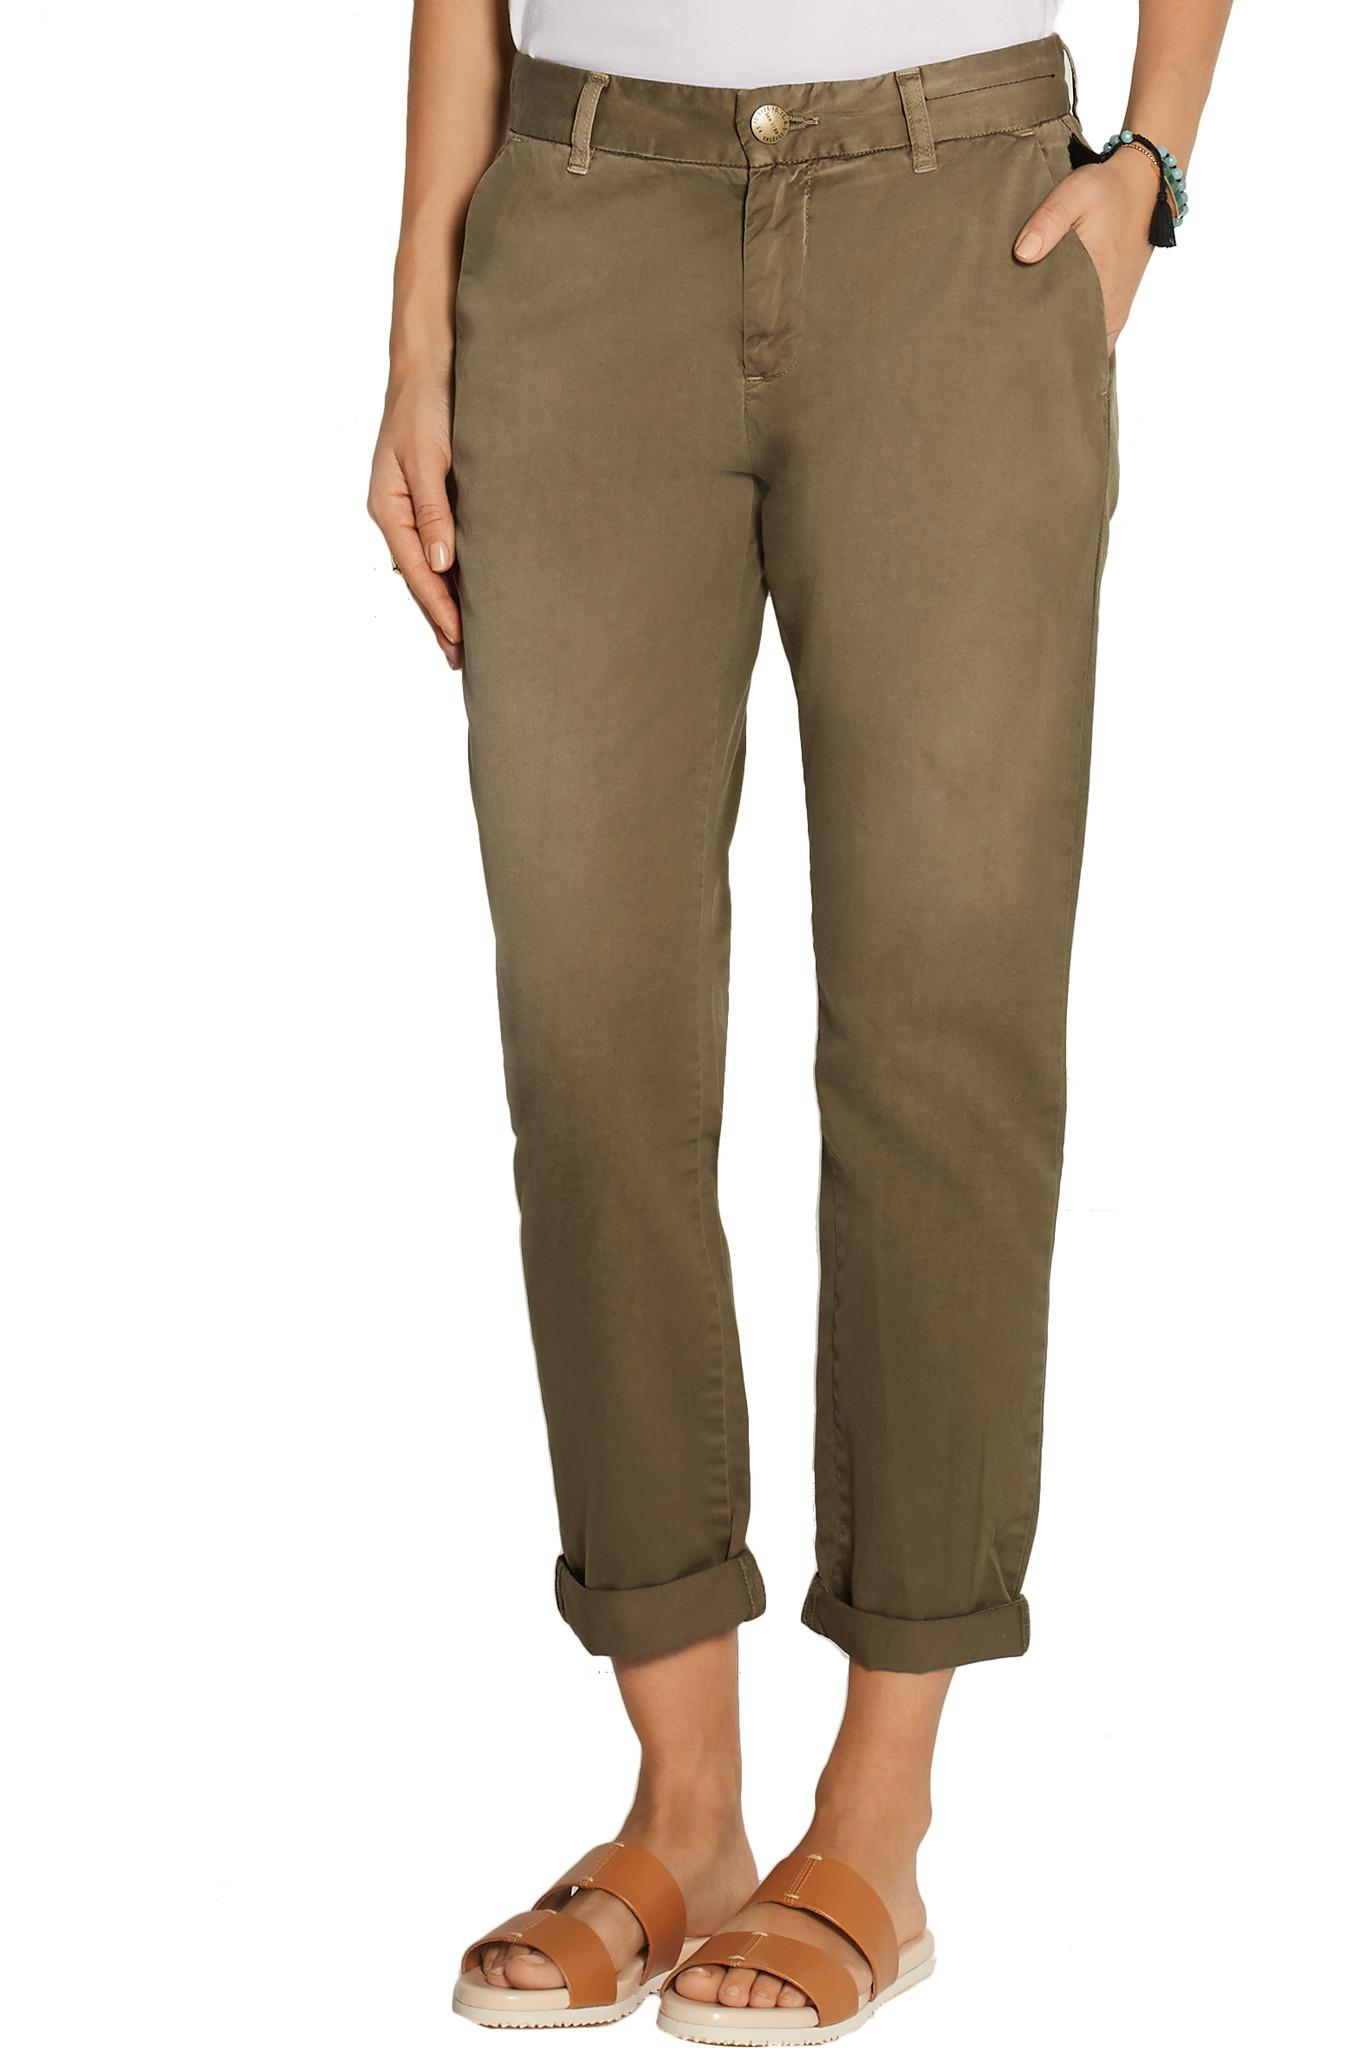 For Cheap Sale Online Discount Shop The Buddy Cotton-twill Tapered Pants - Army green Current Elliott vR29F